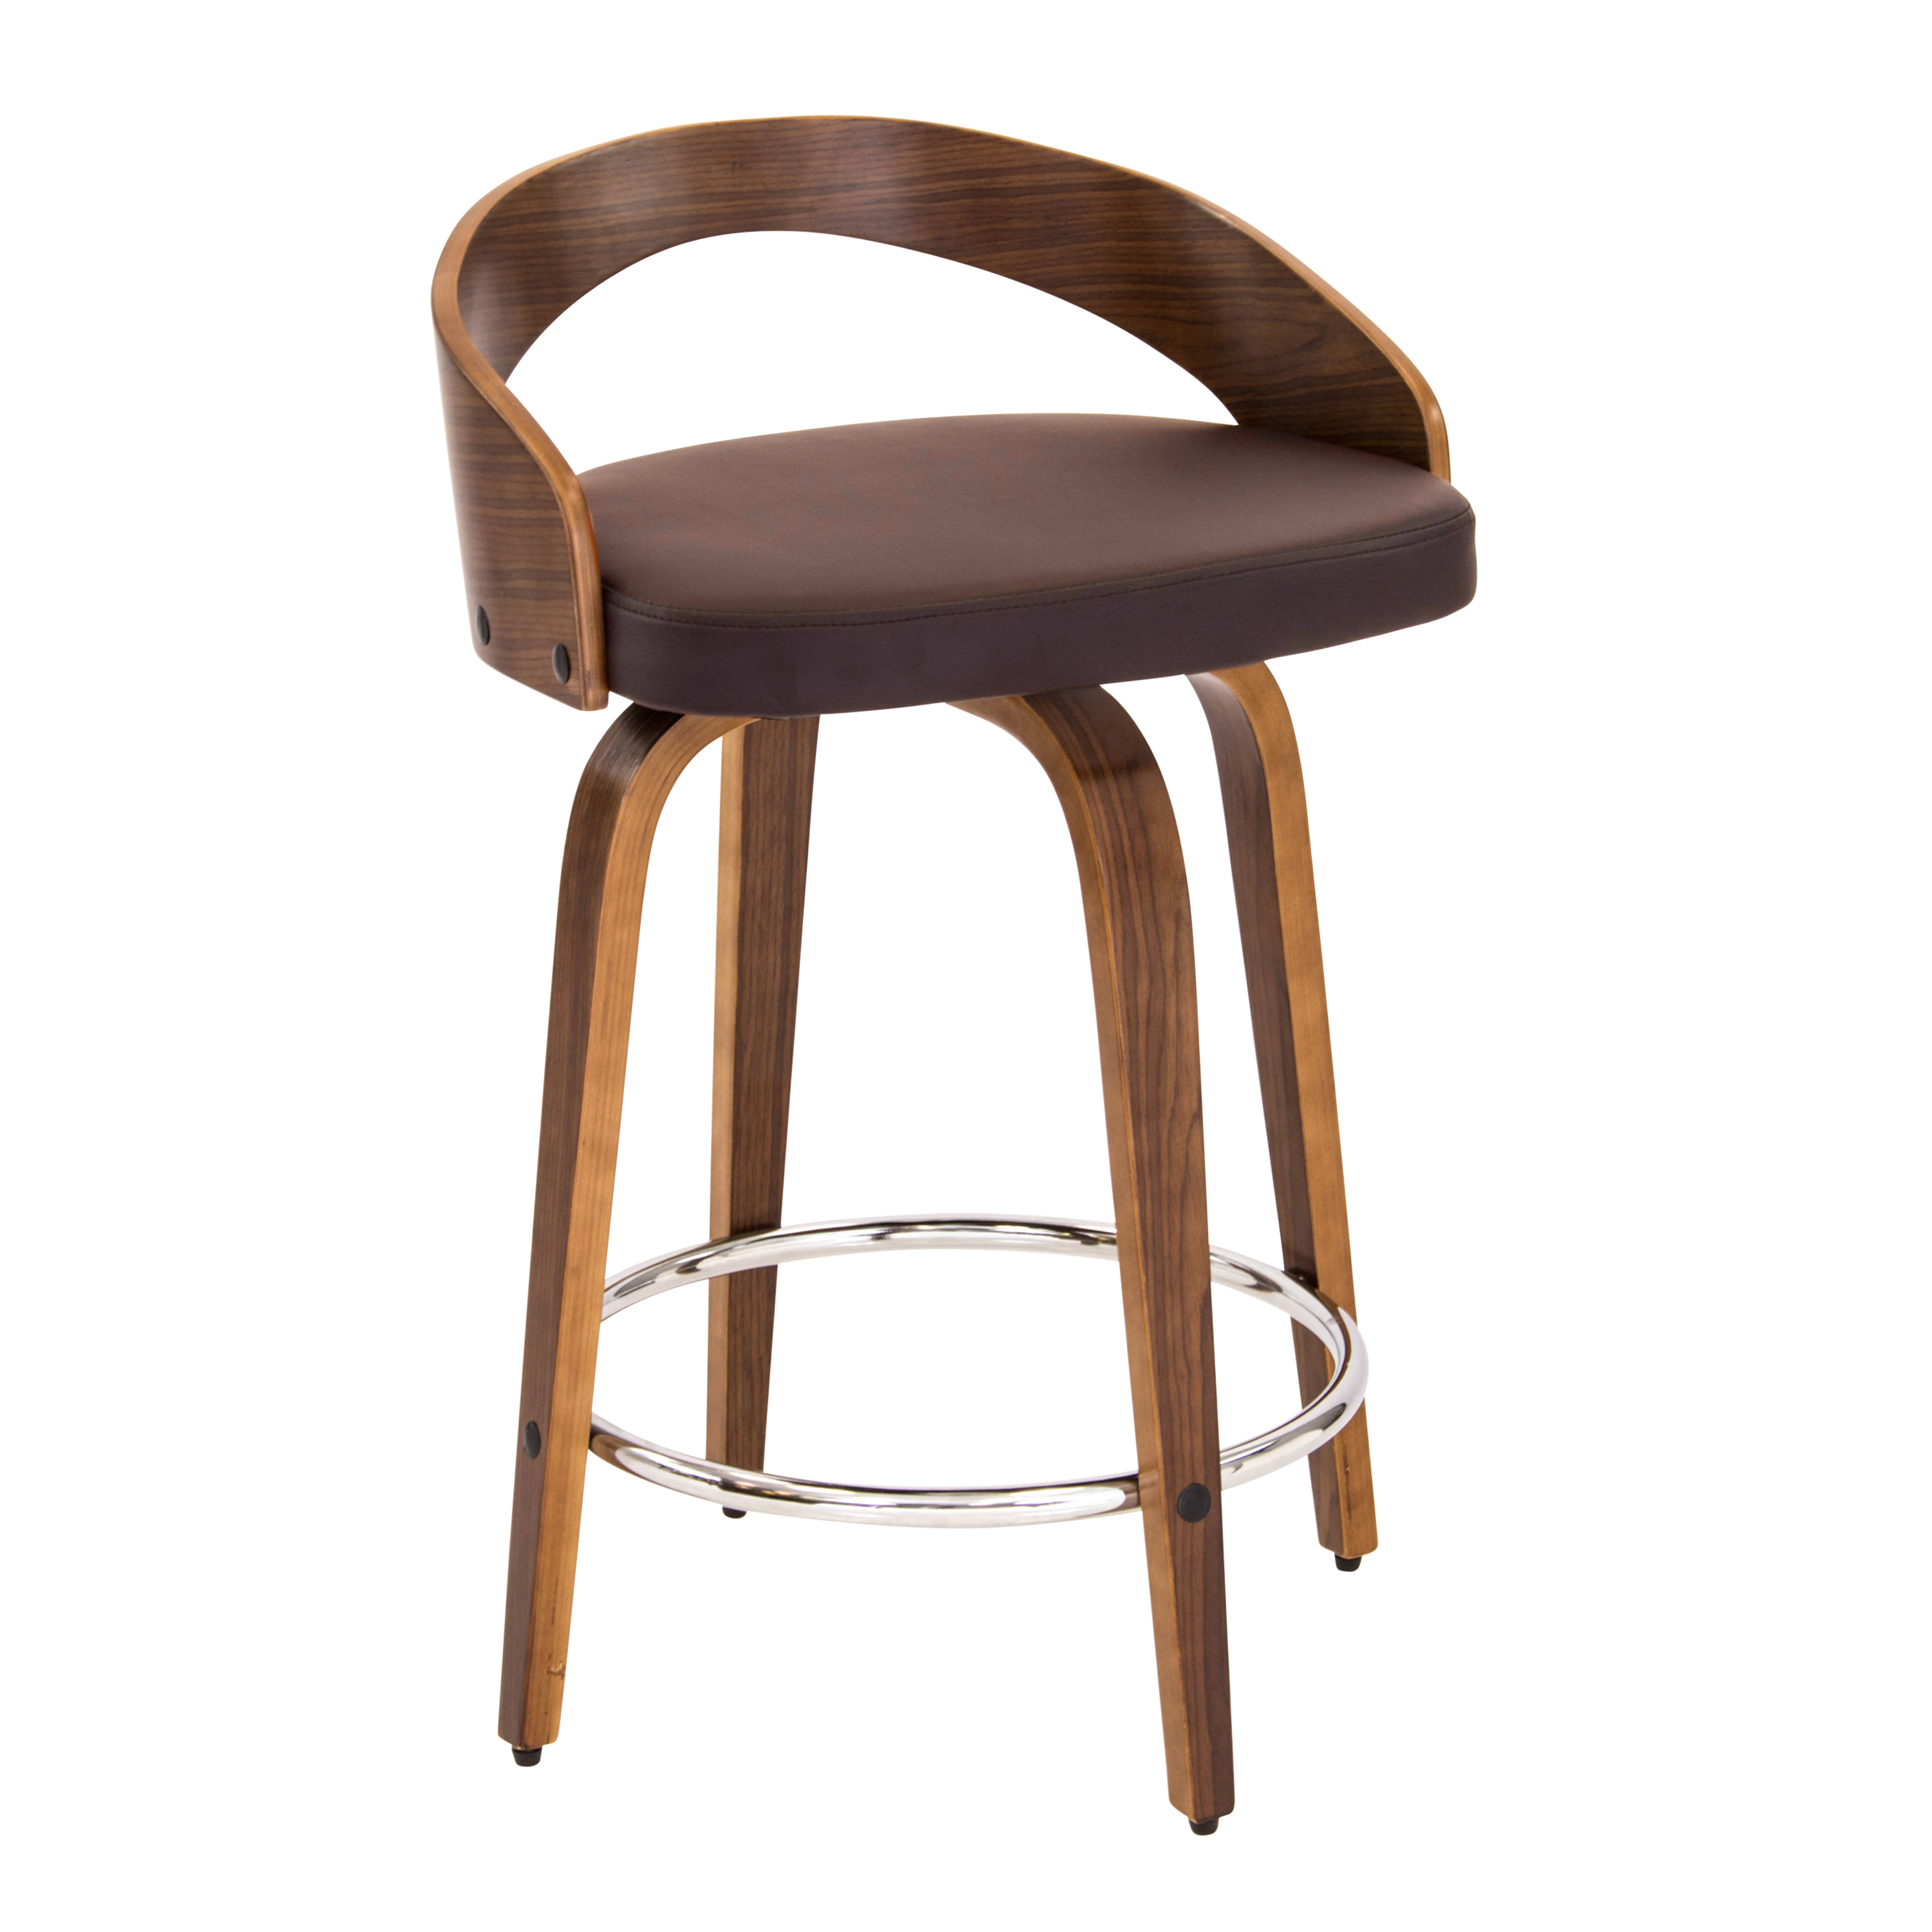 Modern Wood Counter Stool Lumisource Grotto Mid Century Modern Counter Stool With